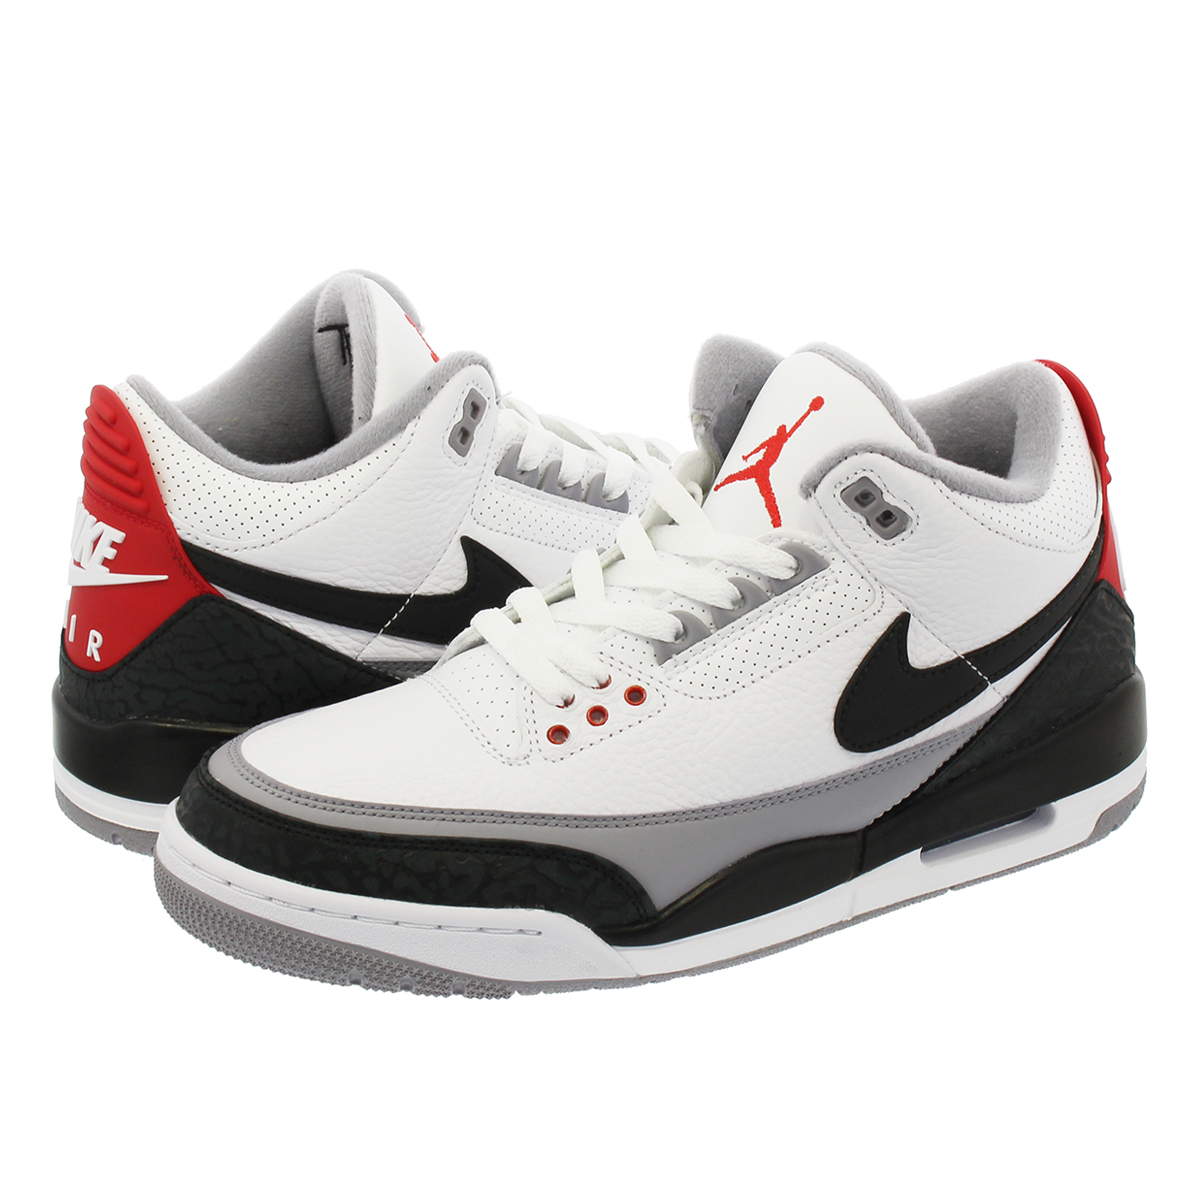 newest collection bd868 9c4c6 NIKE AIR JORDAN 3 RETRO TINKER NRG Nike Air Jordan 3 レトロティンカー NRG  WHITE/FIRE RED/CEMENT GREY/BLACK aq3835-160